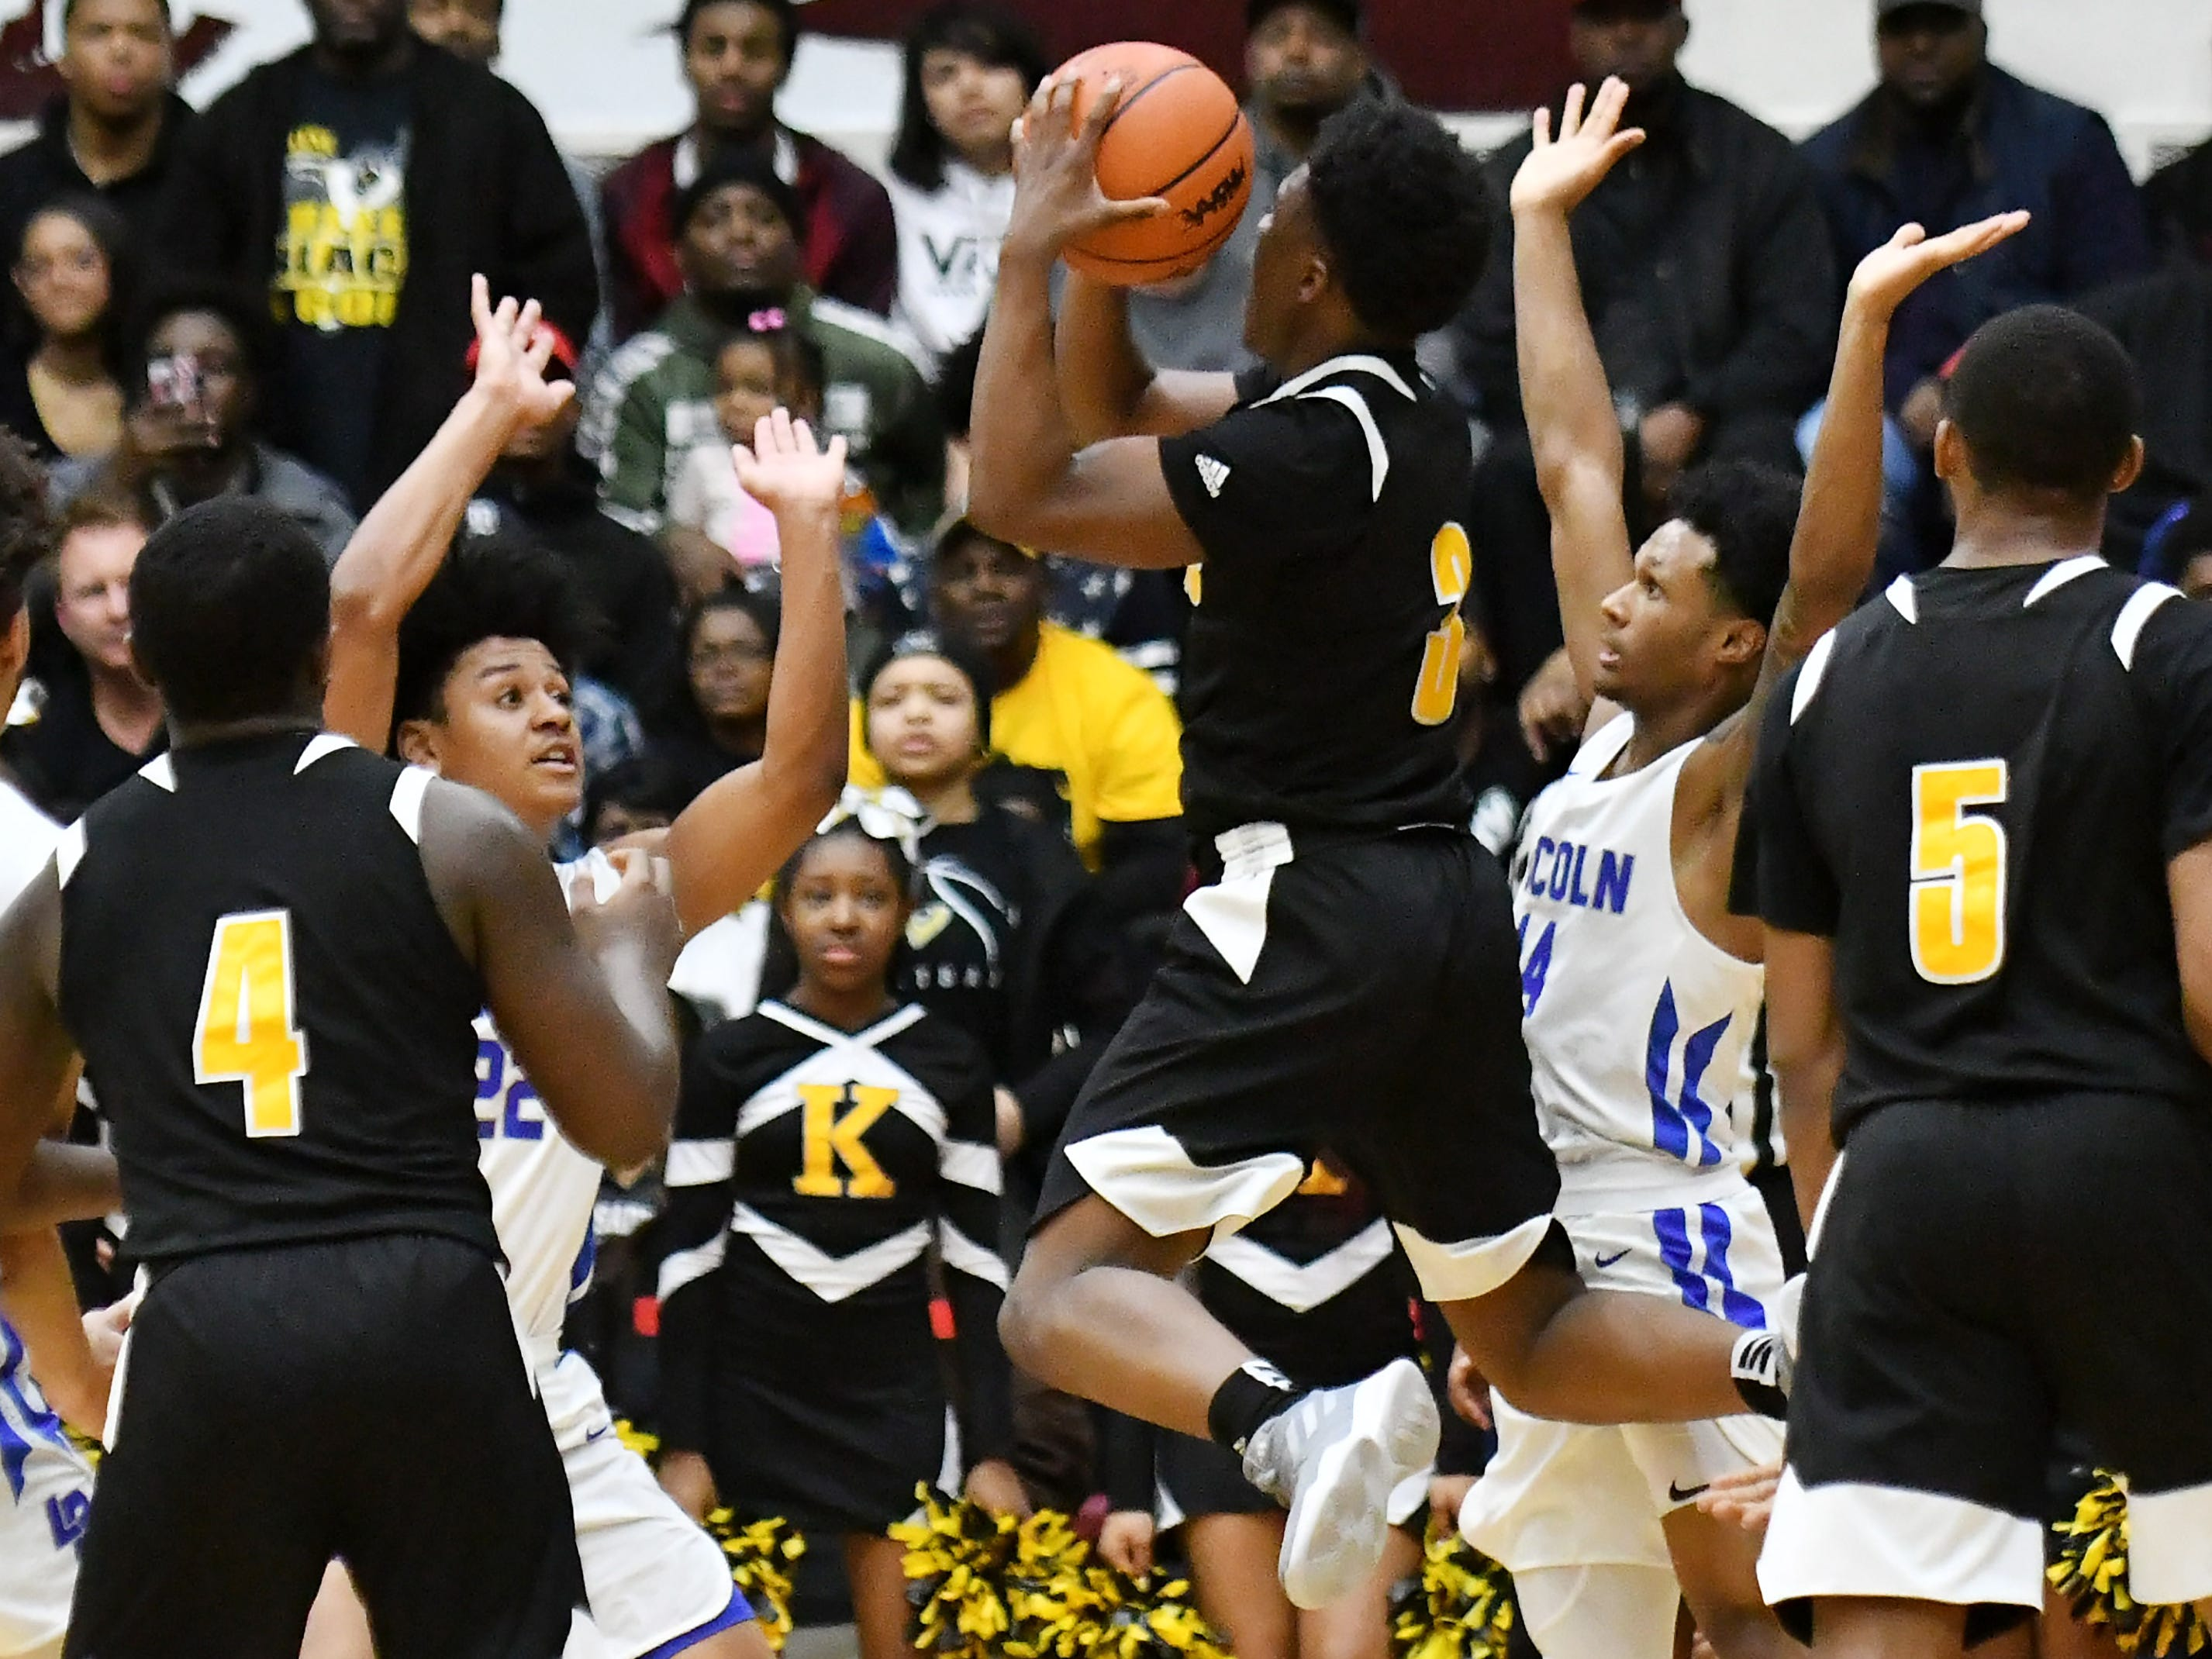 Lincoln's Ibn Abdul-Rahman, left, and Jalen Fisher, right, are careful not to foul King's Jordan Whitford taking King's last shot of the game in the second half.